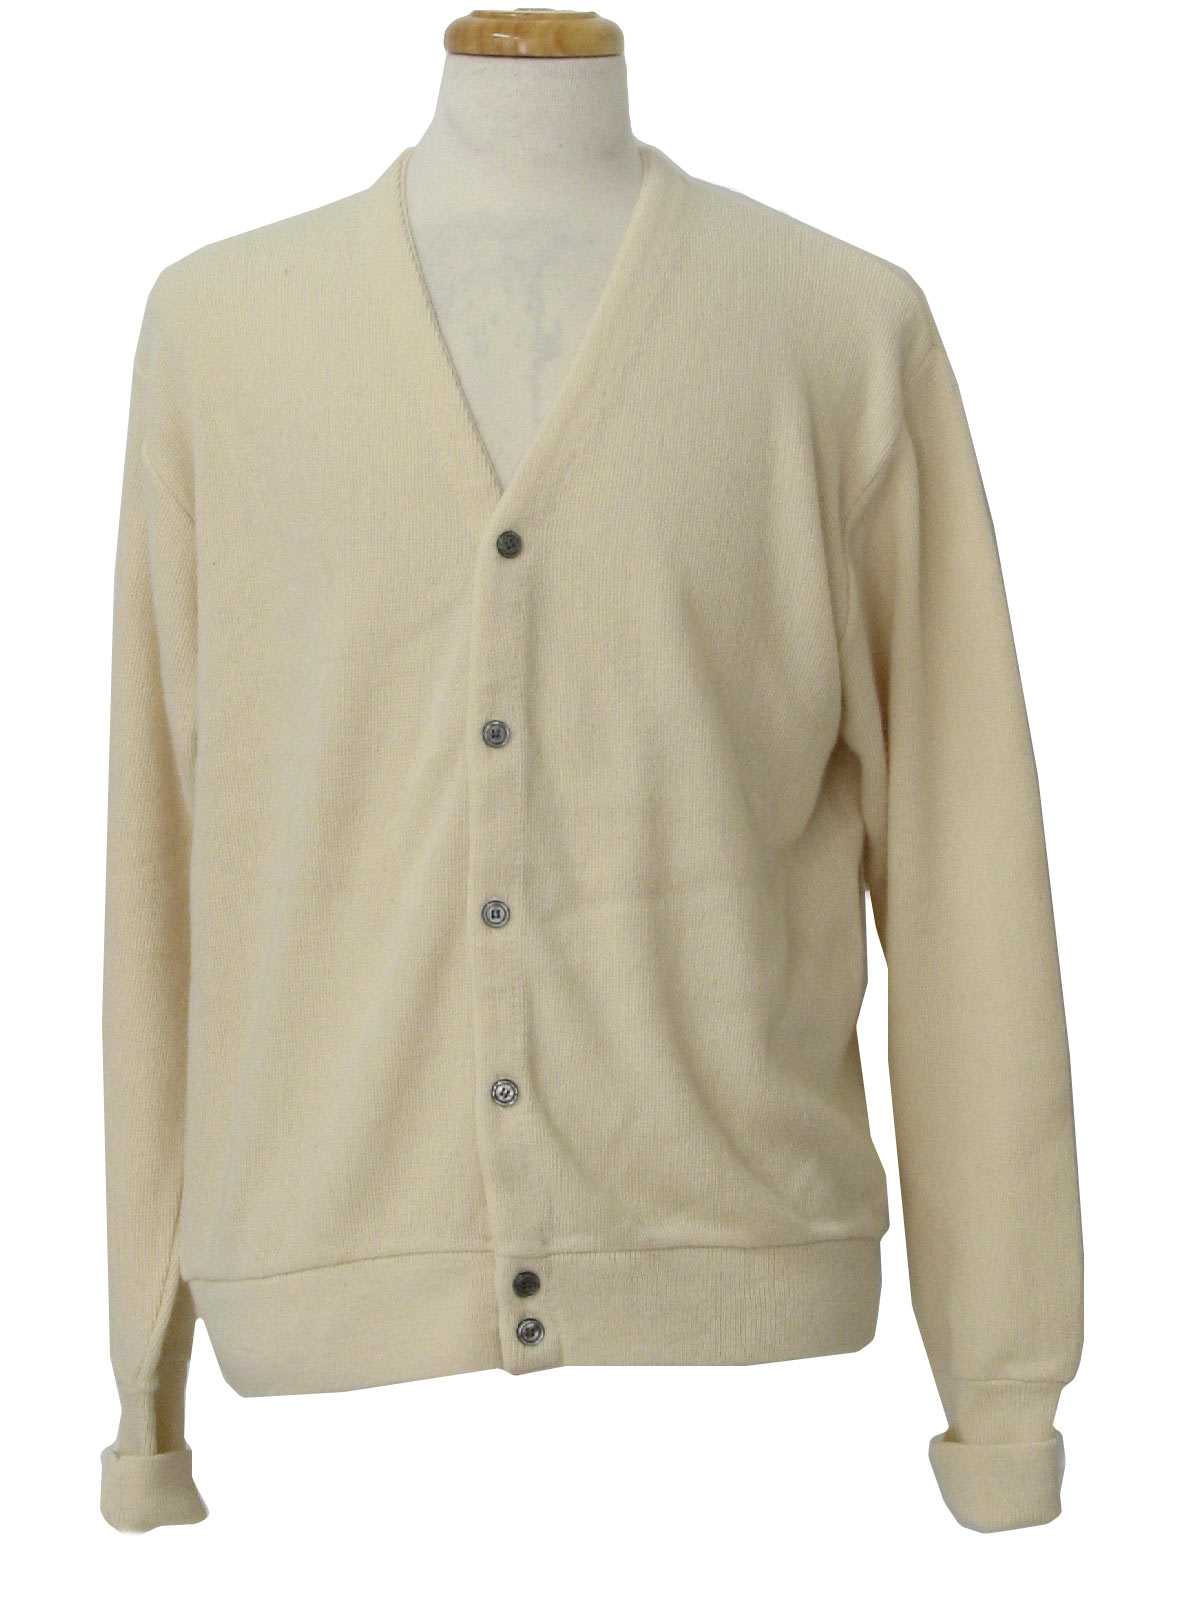 Vintage 70s Caridgan Sweater: 70s -Jantzen- Mens cream acrylic ...